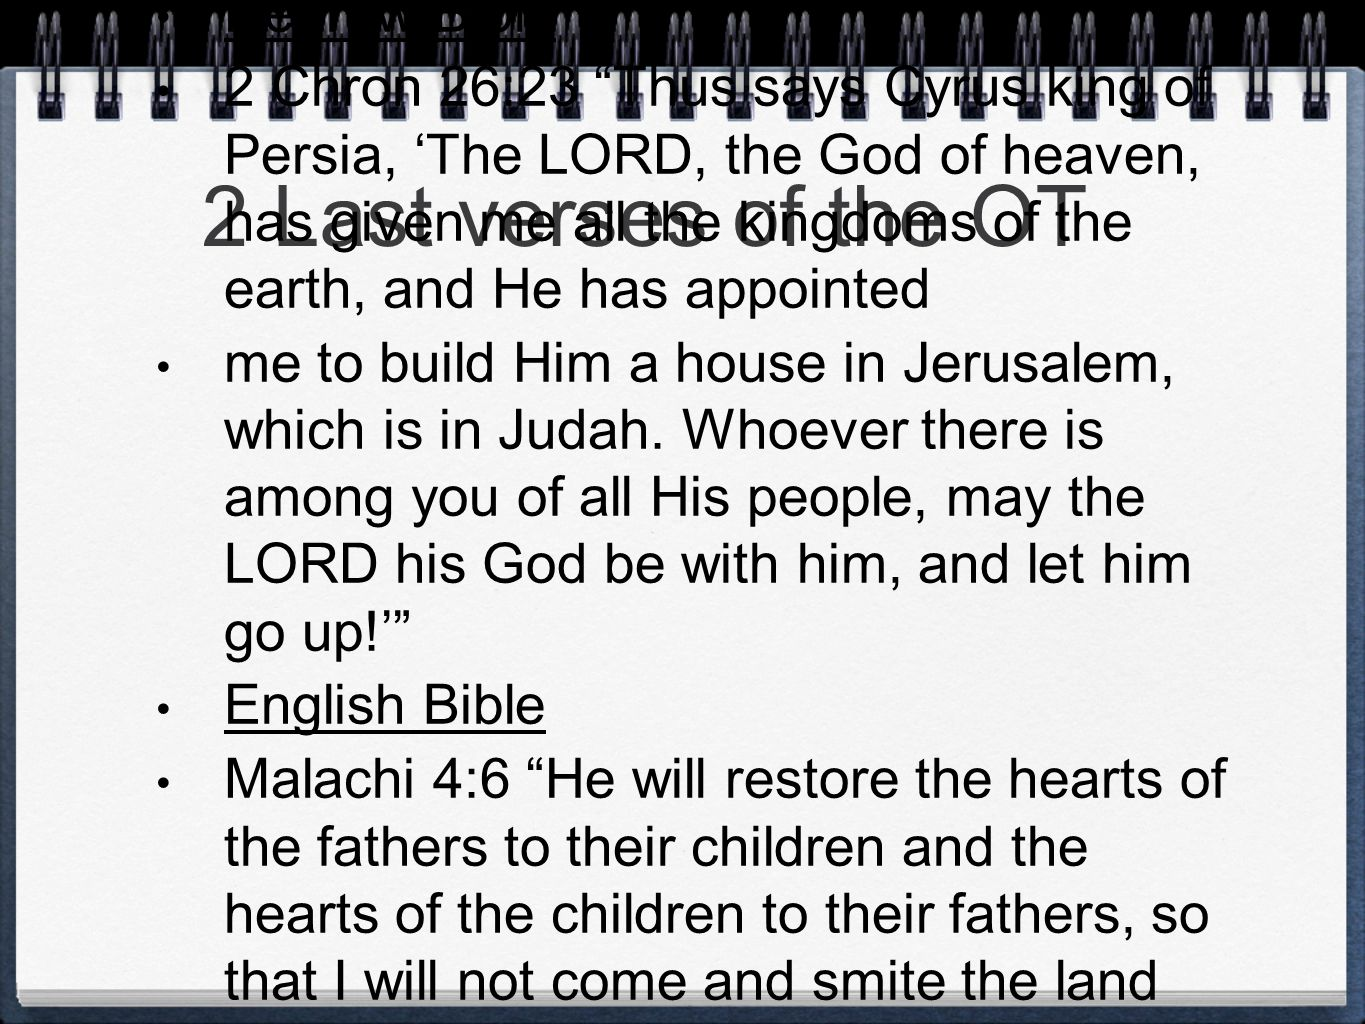 2 Last verses of the OT Hebrew Bible 2 Chron 26:23 Thus says Cyrus king of Persia, 'The LORD, the God of heaven, has given me all the kingdoms of the earth, and He has appointed me to build Him a house in Jerusalem, which is in Judah.